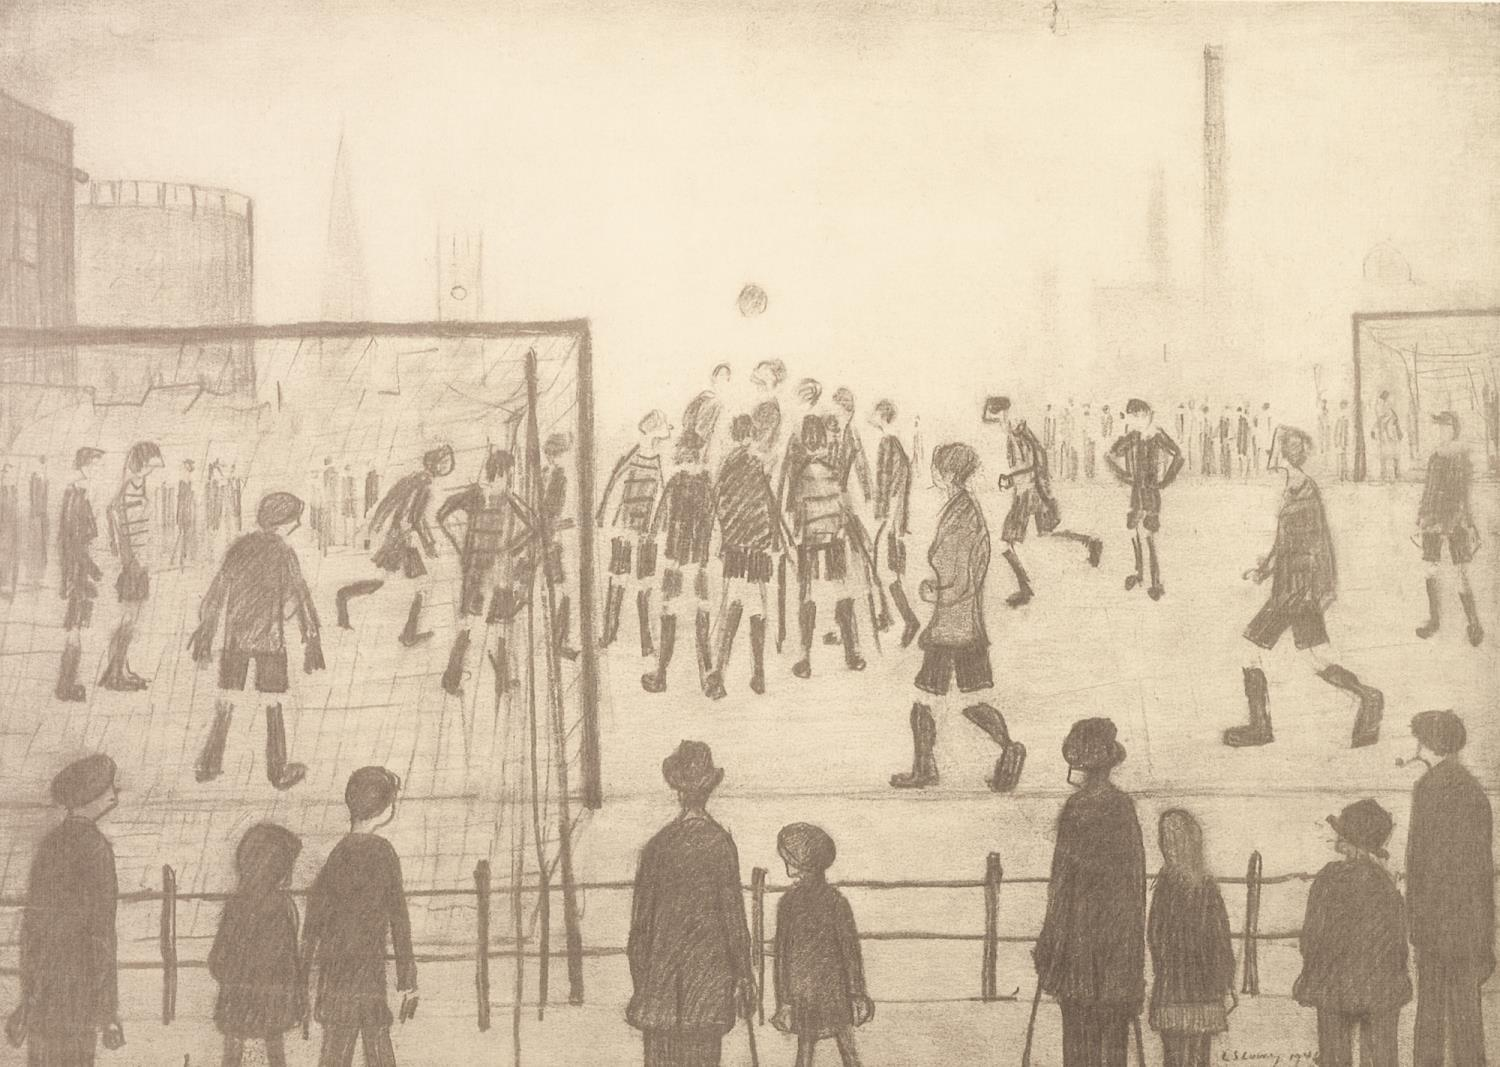 Lot 233 - L.S. LOWRY (1887 - 1976) LIMITED EDITION PRINT OF A PENCIL DRAWING 'The Football Match' Stamped